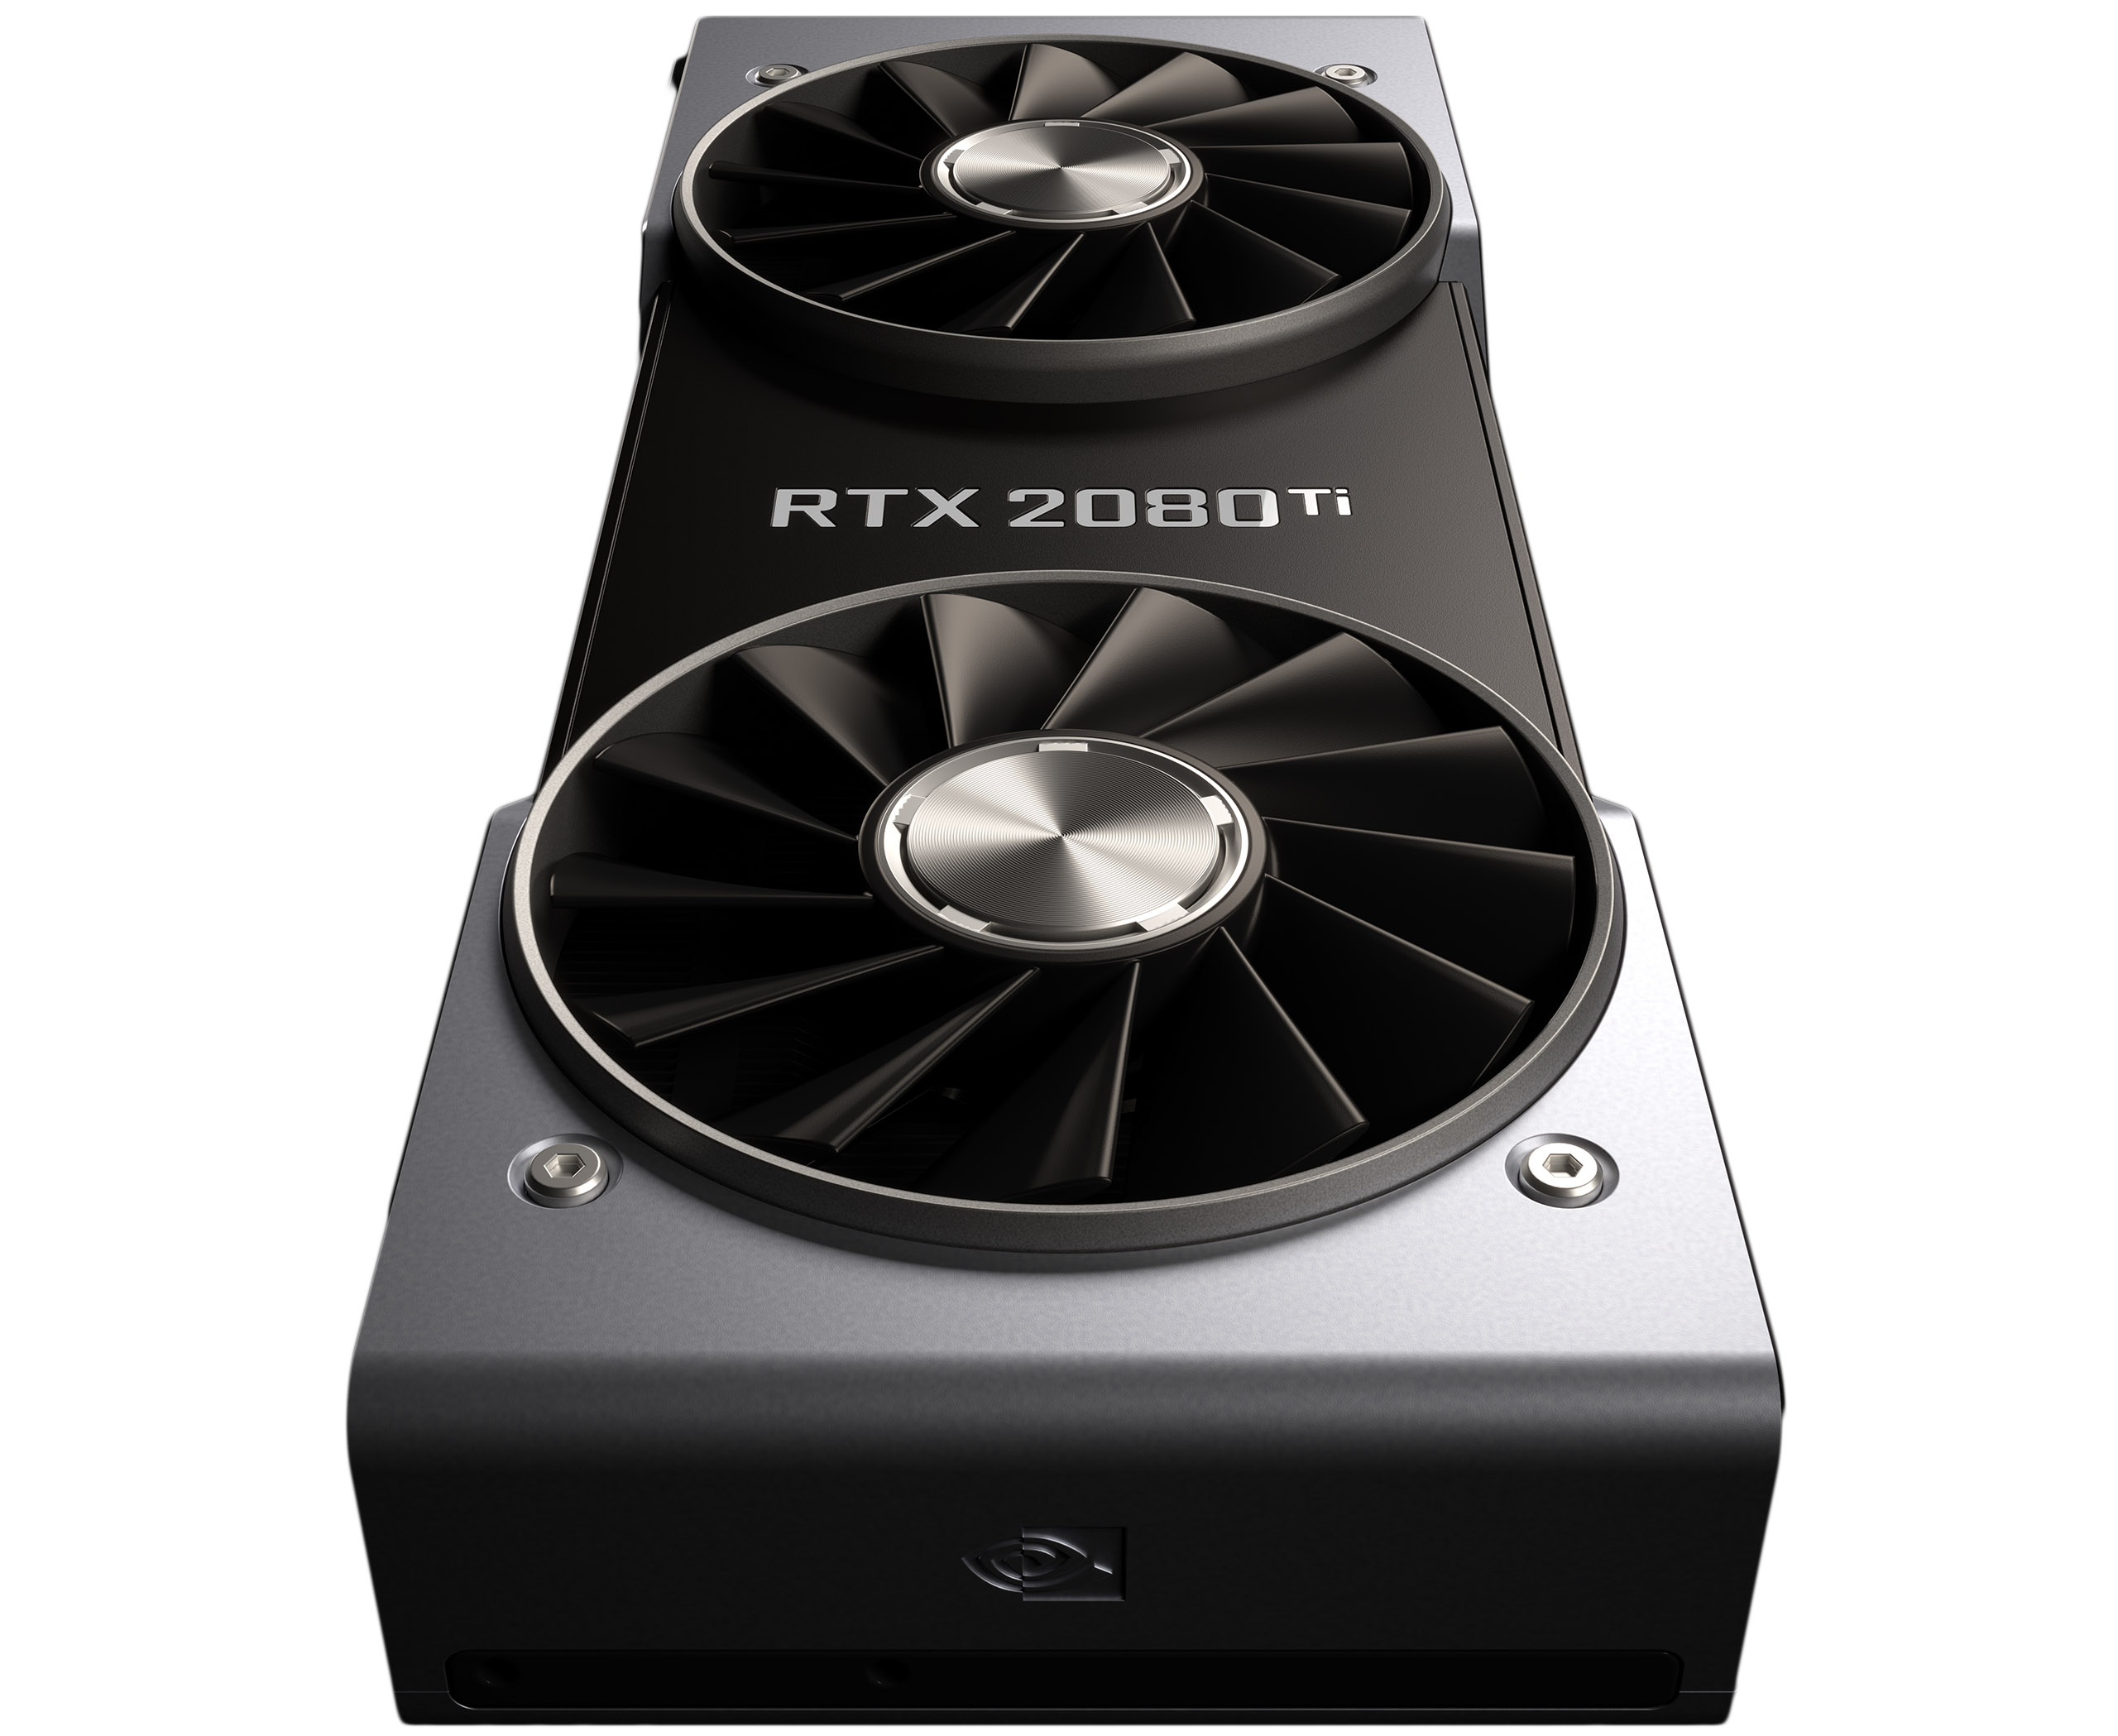 NVIDIA Announces GeForce RTX 2080 GPUs: Now With Ray Tracing – Techgage